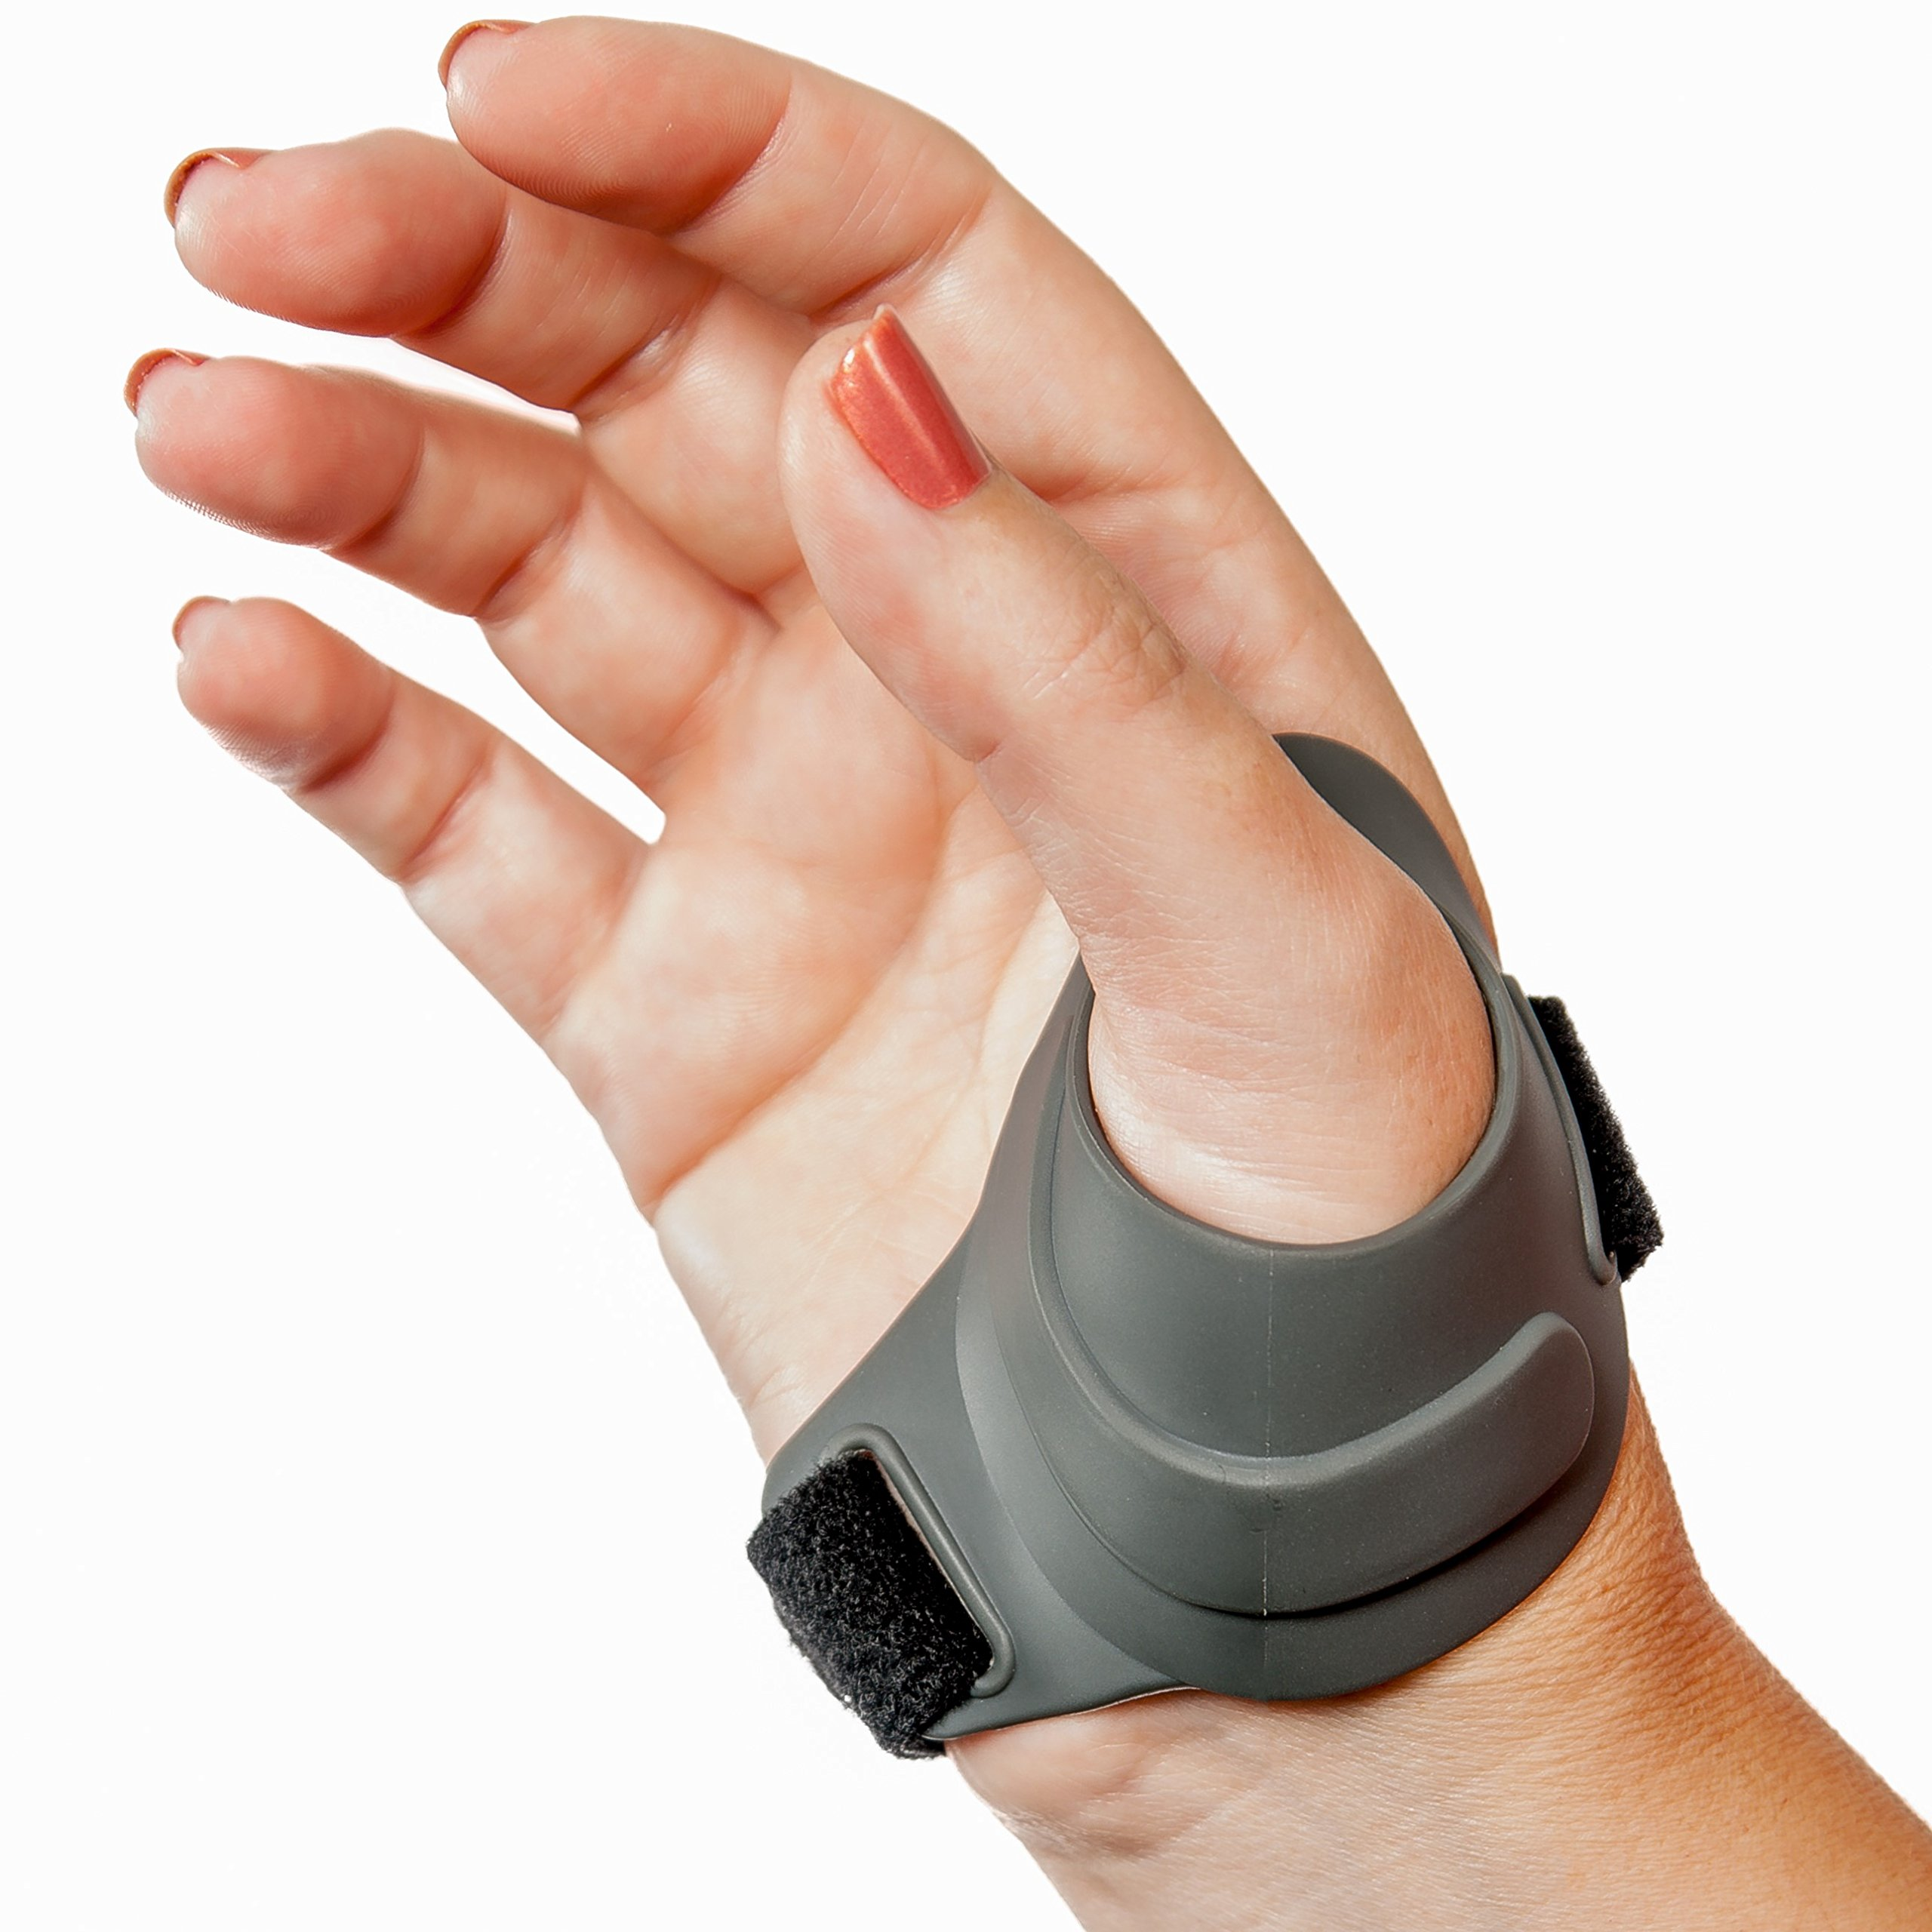 CMCcare Thumb Brace - Durable, Waterproof Brace for Thumb Arthritis Pain Relief, Right Hand, Size Large